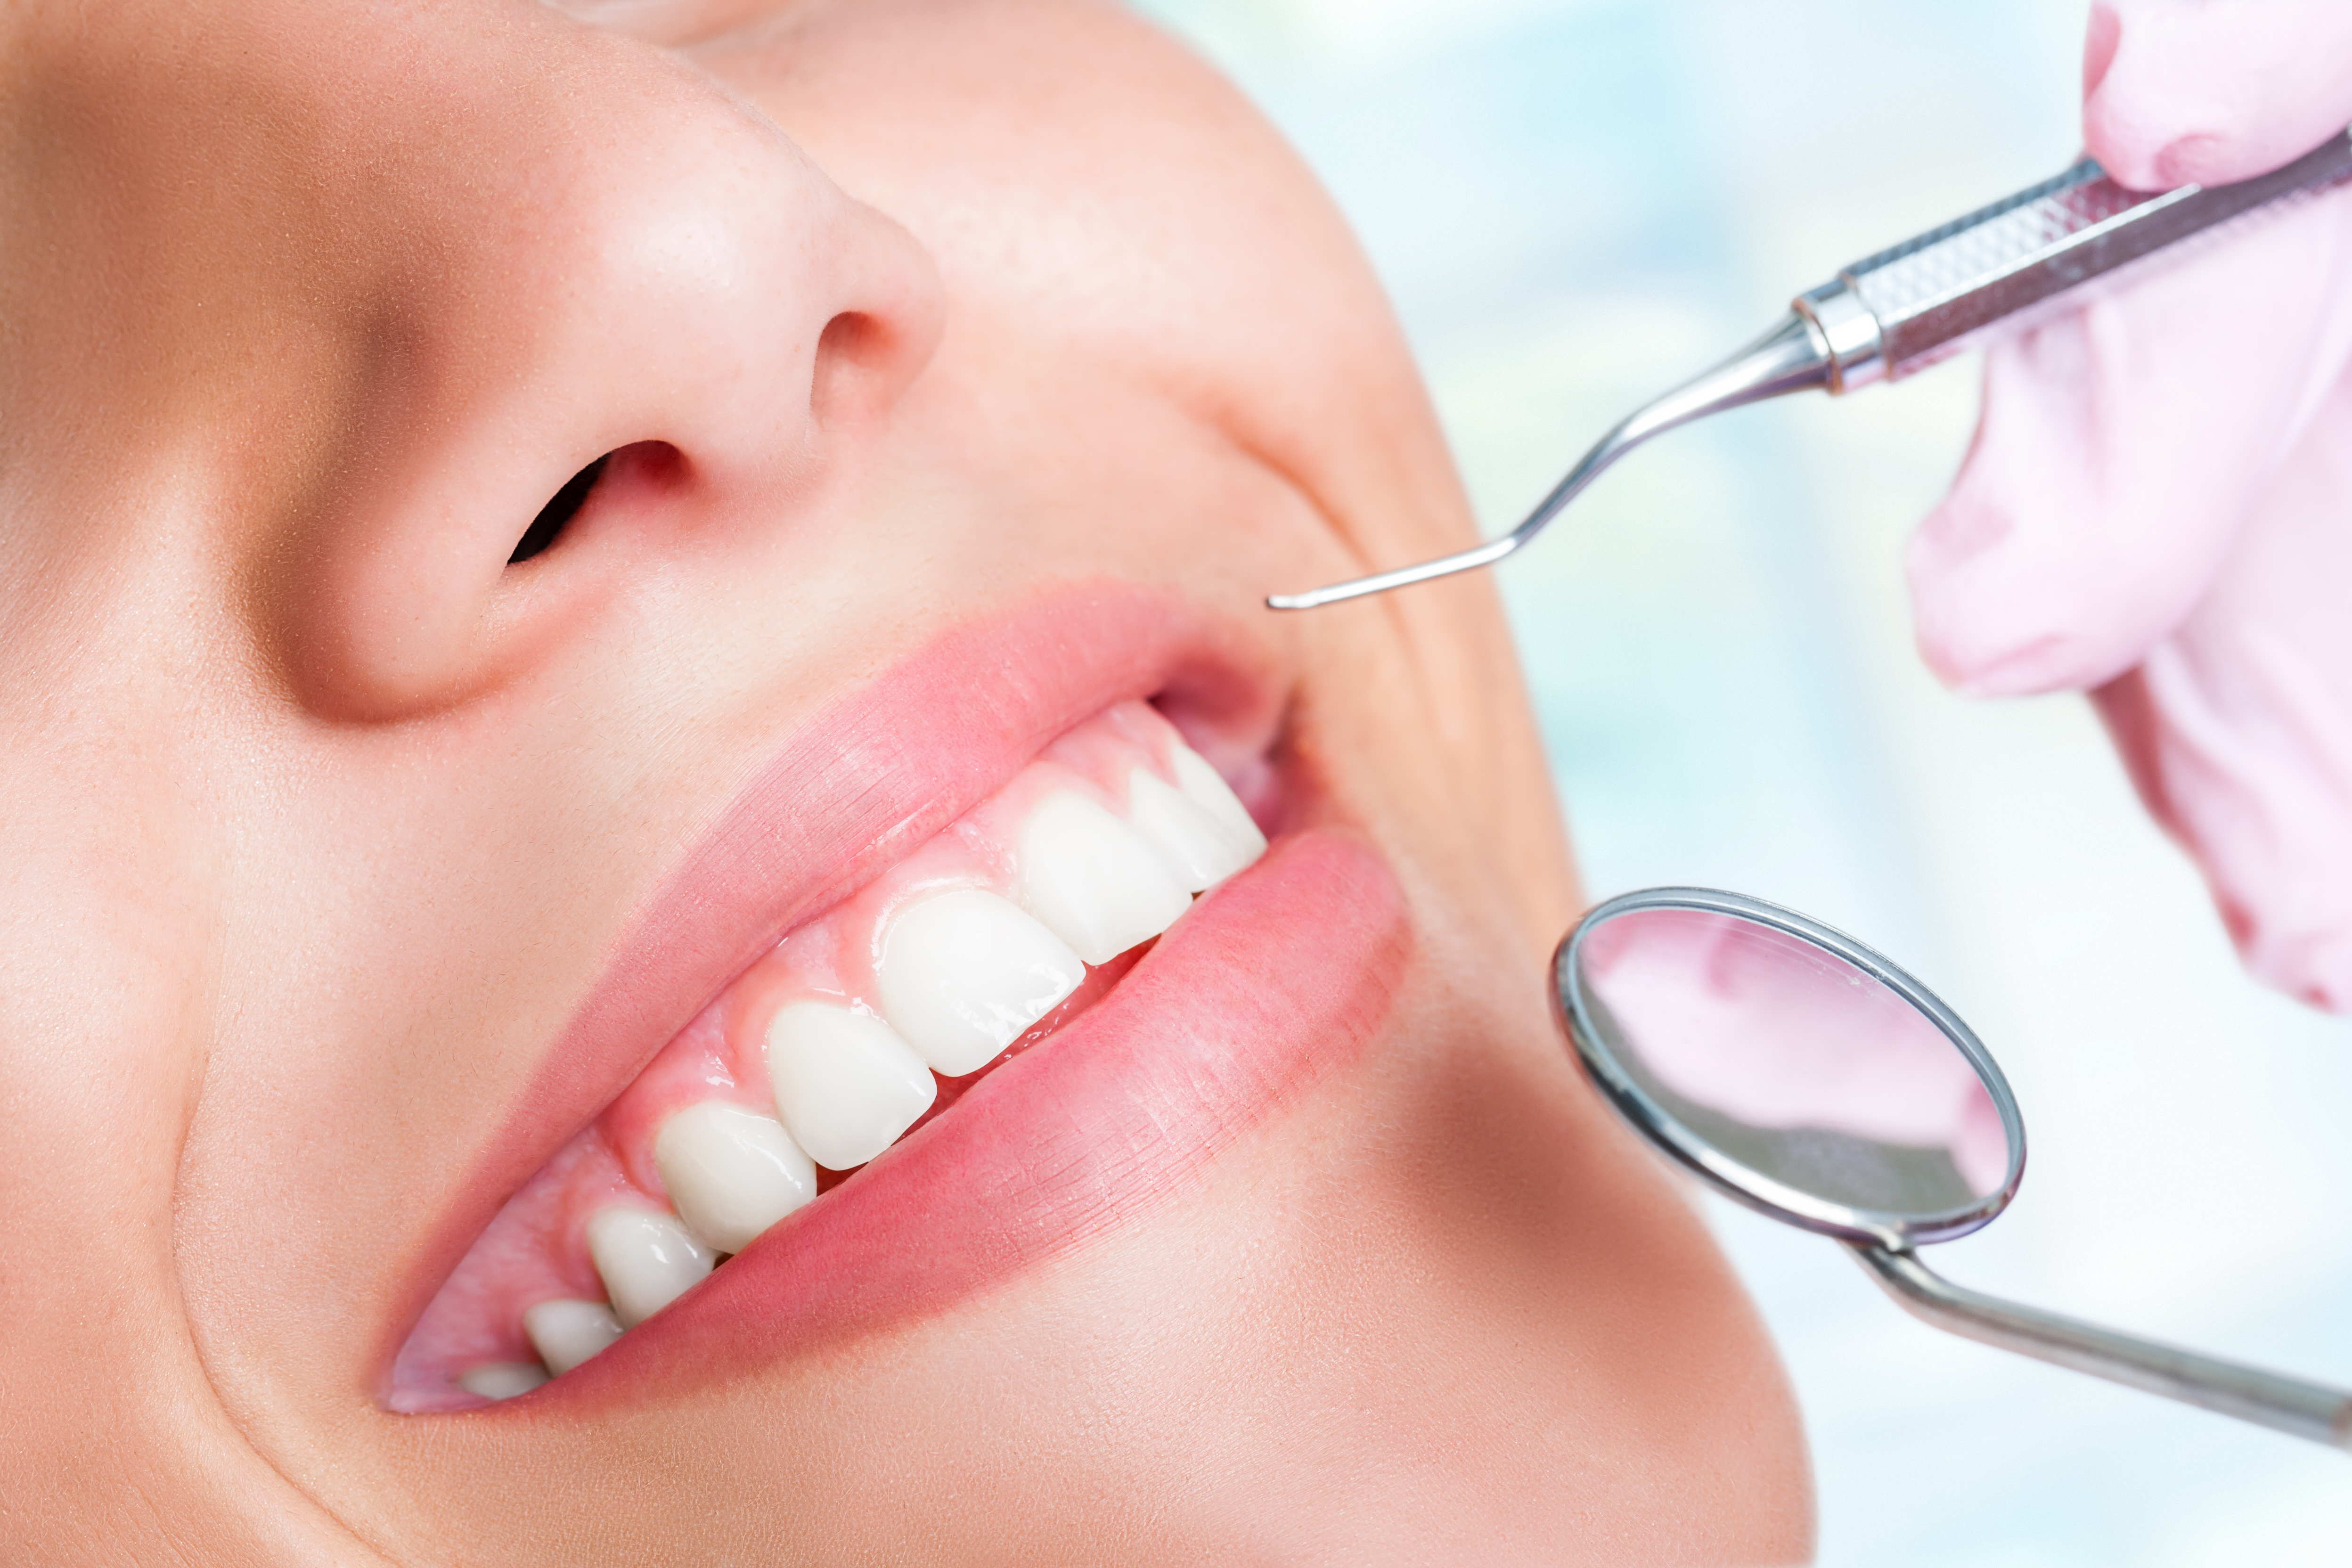 Gum Disease Treatment in Palm Beach Gardens   What Are My Options?